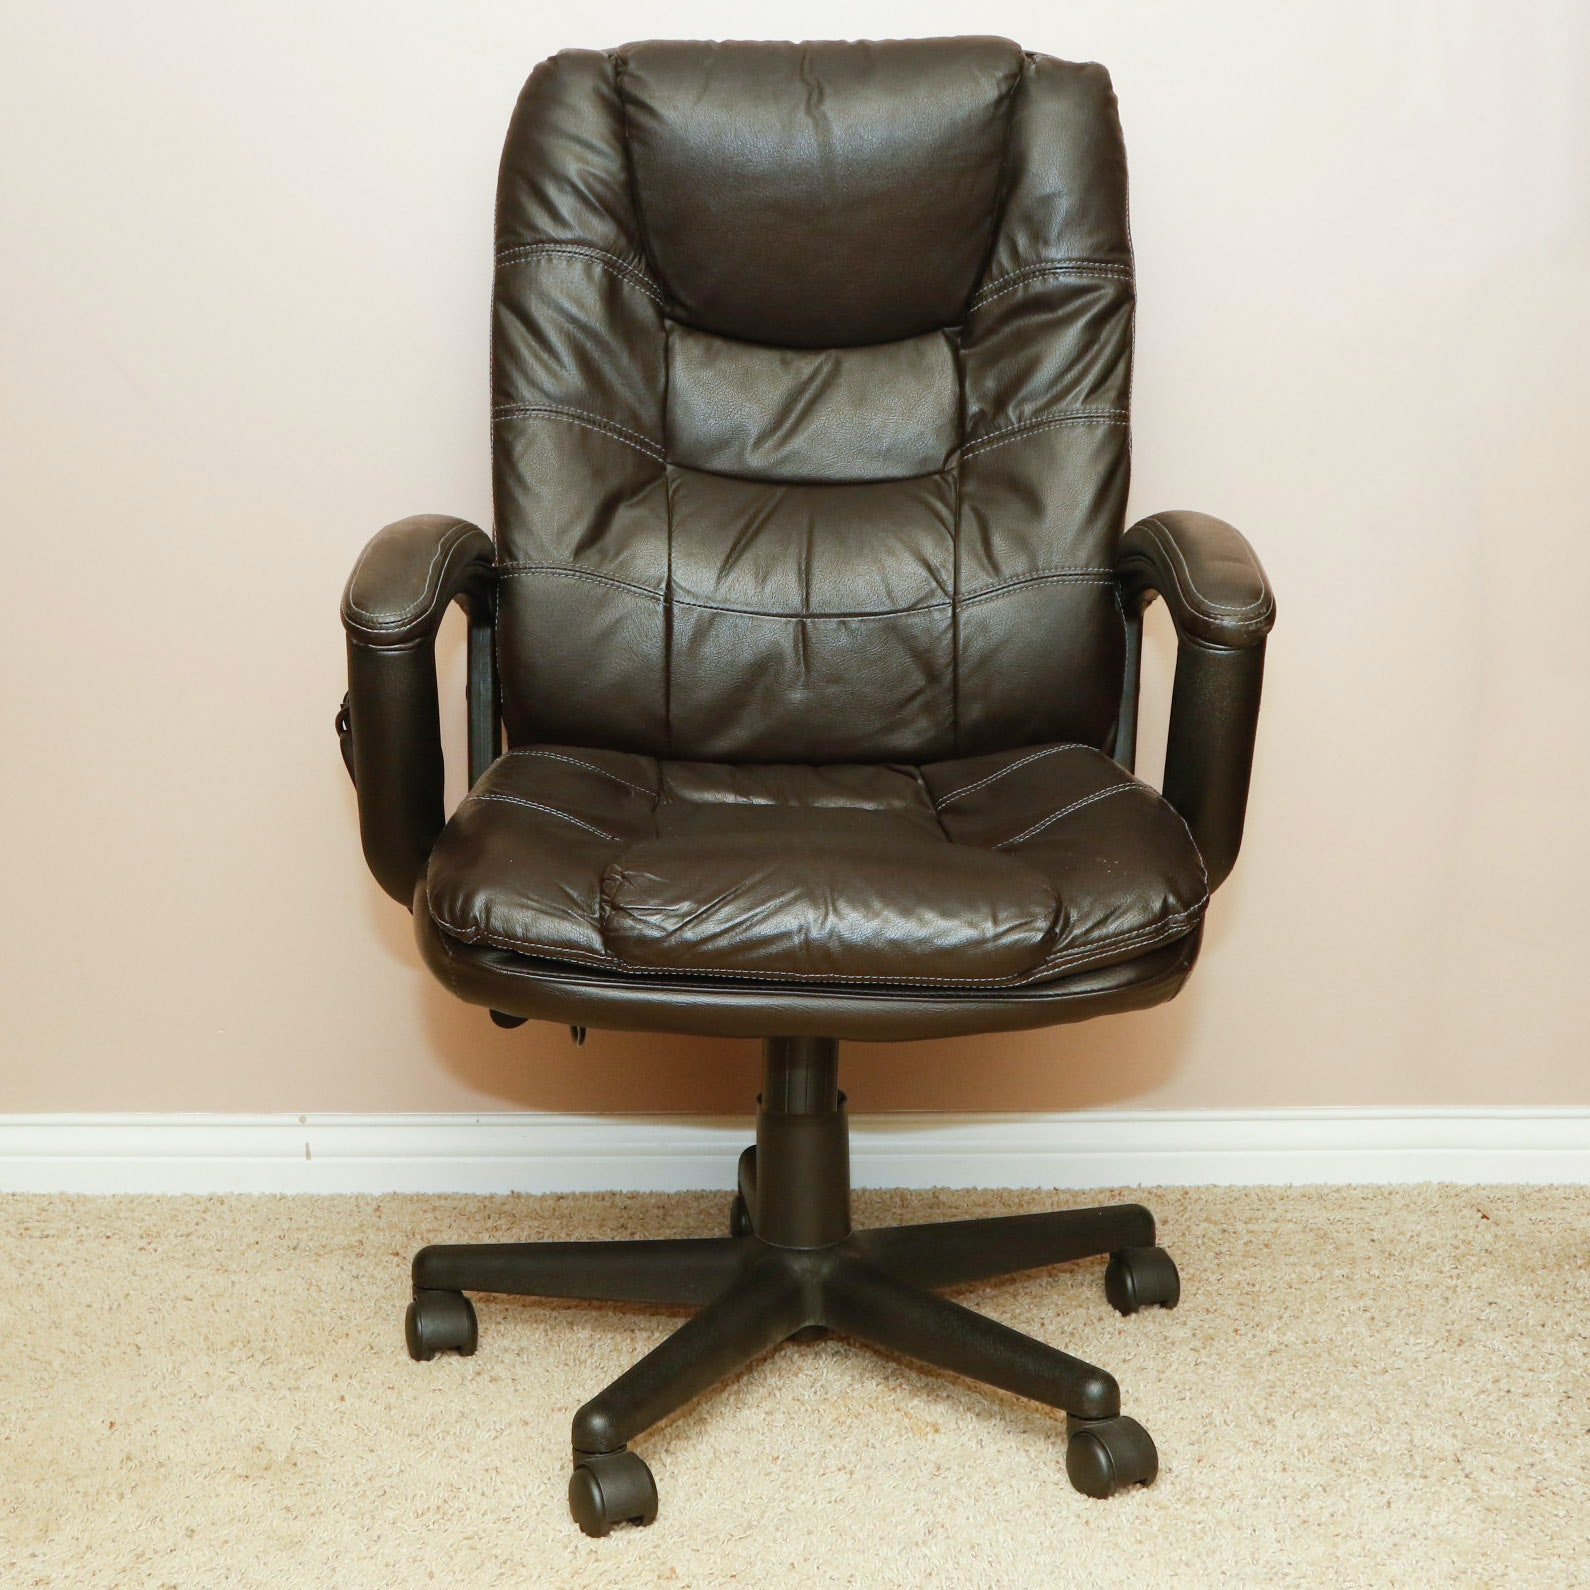 True Seating Concepts fice Massage Chair